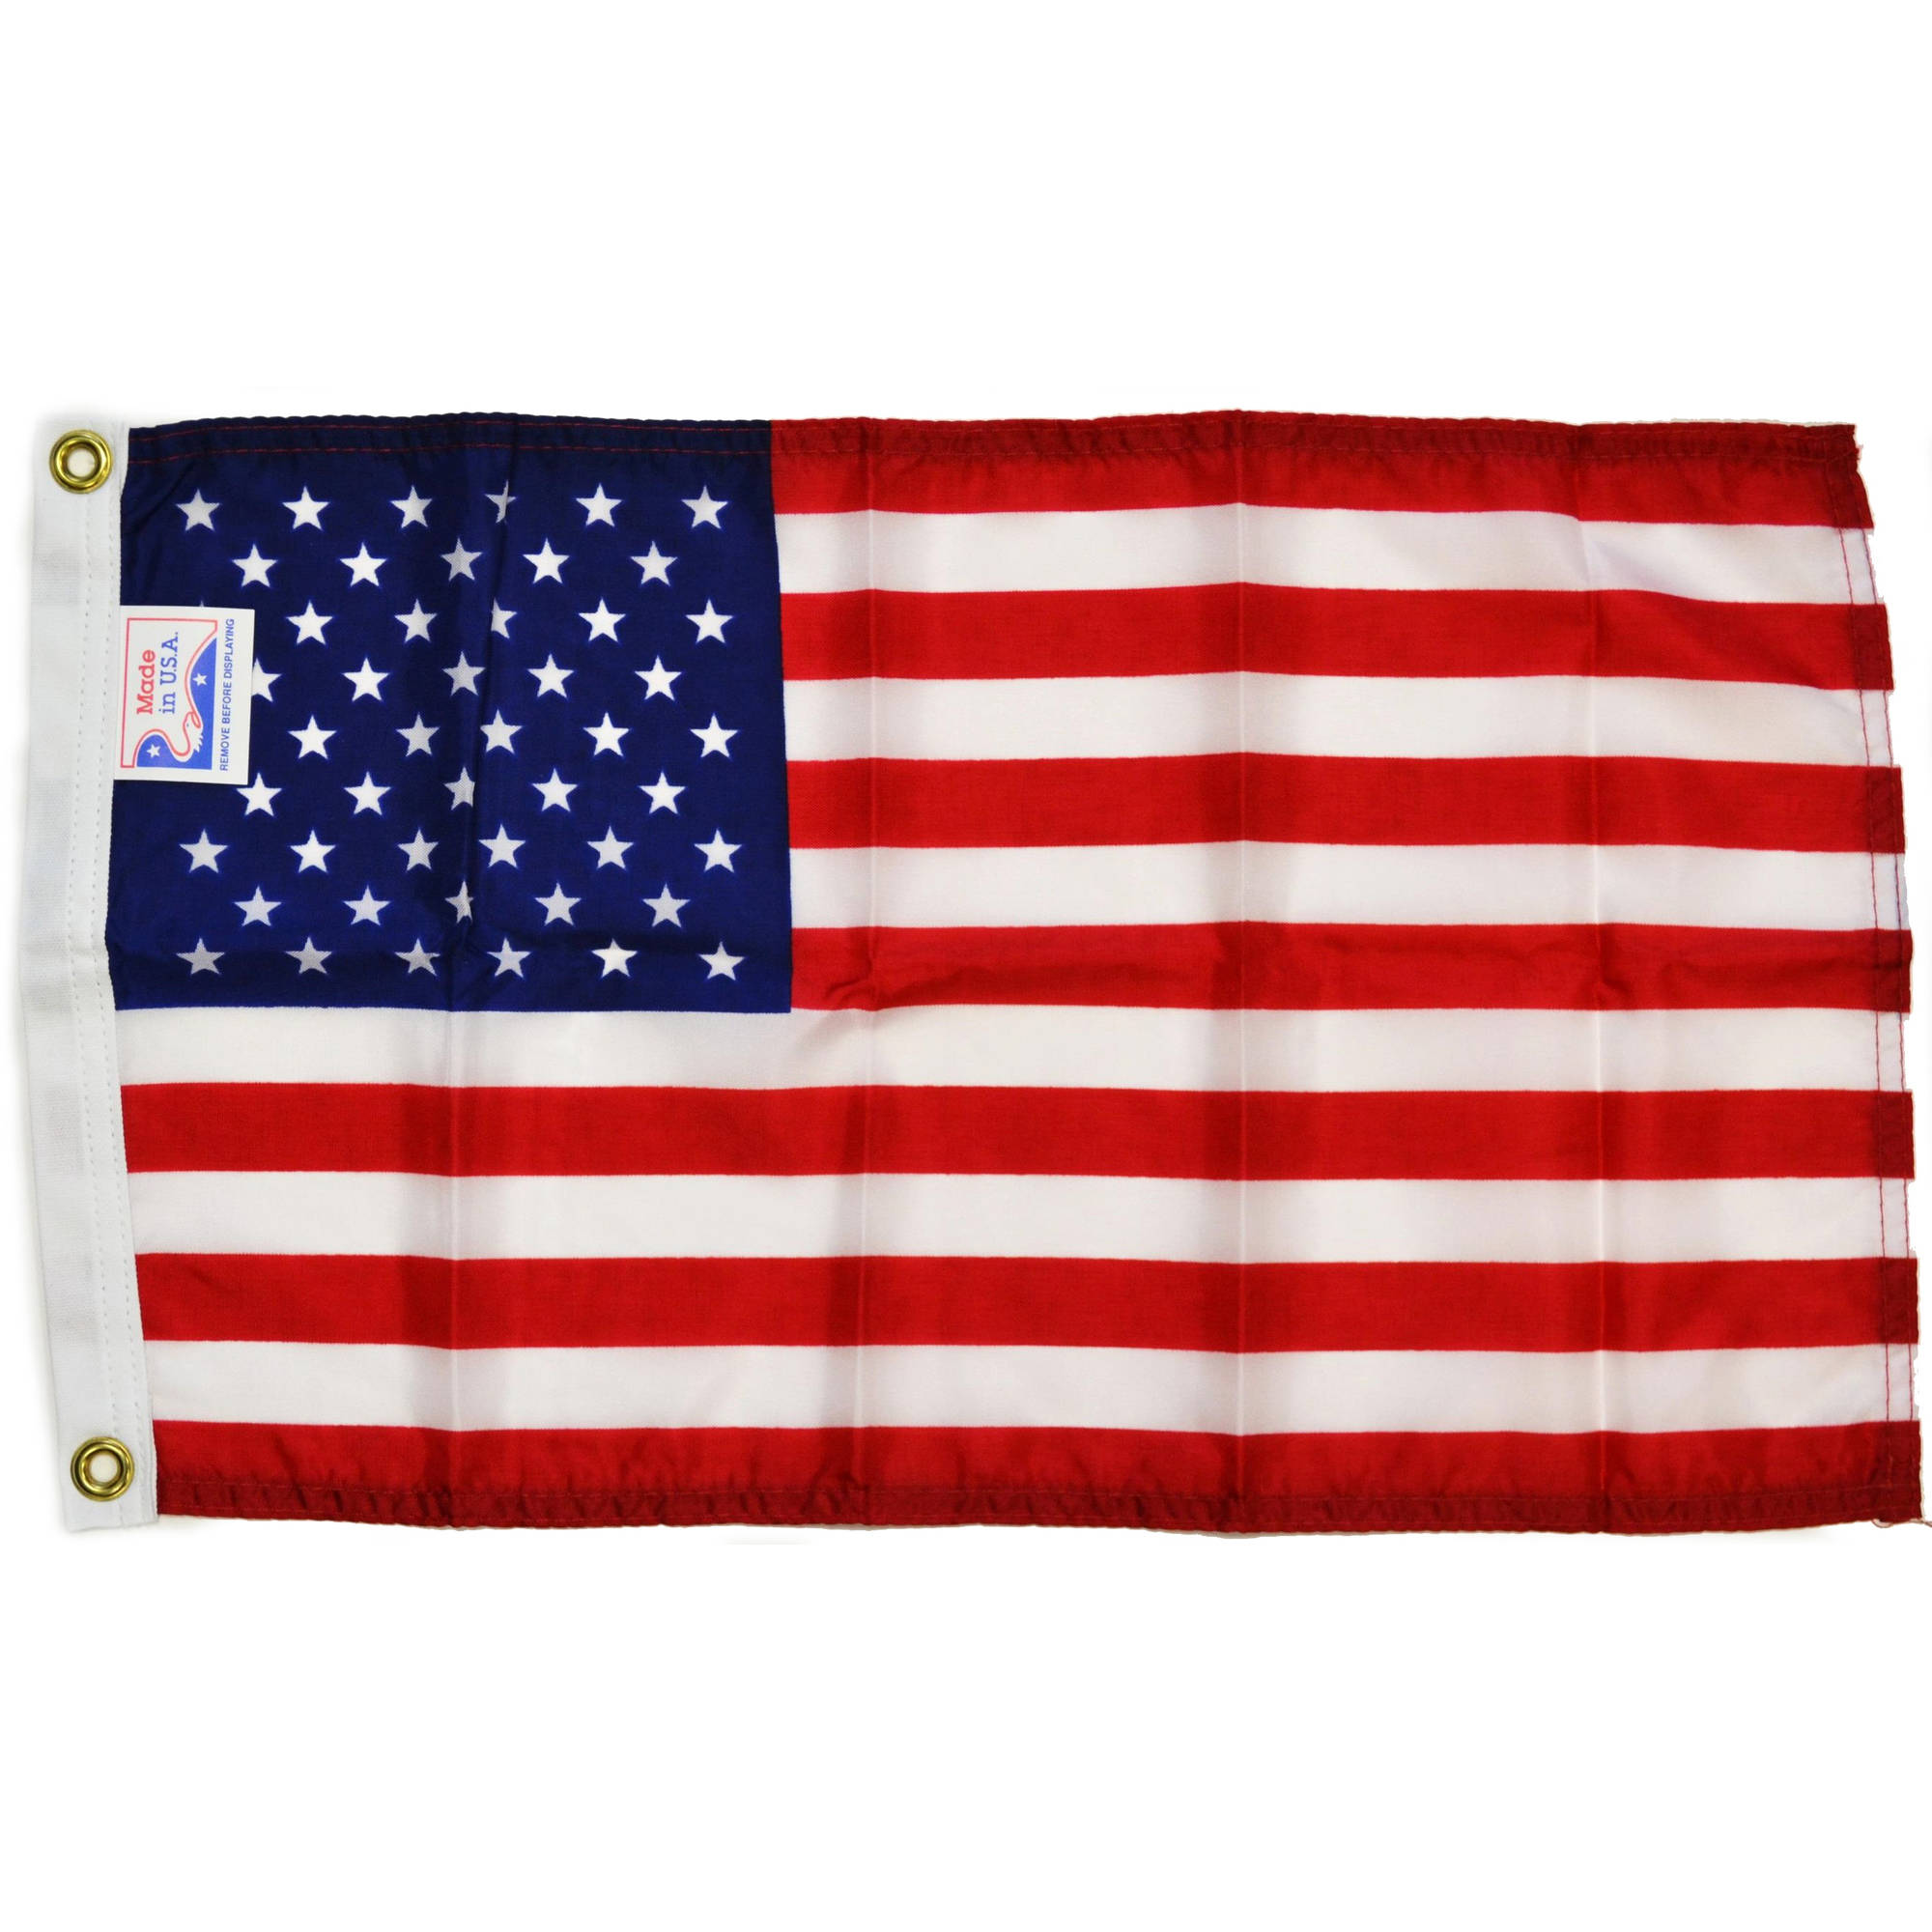 Best Choice Products 25ft Telescopic Aluminum Flagpole w American